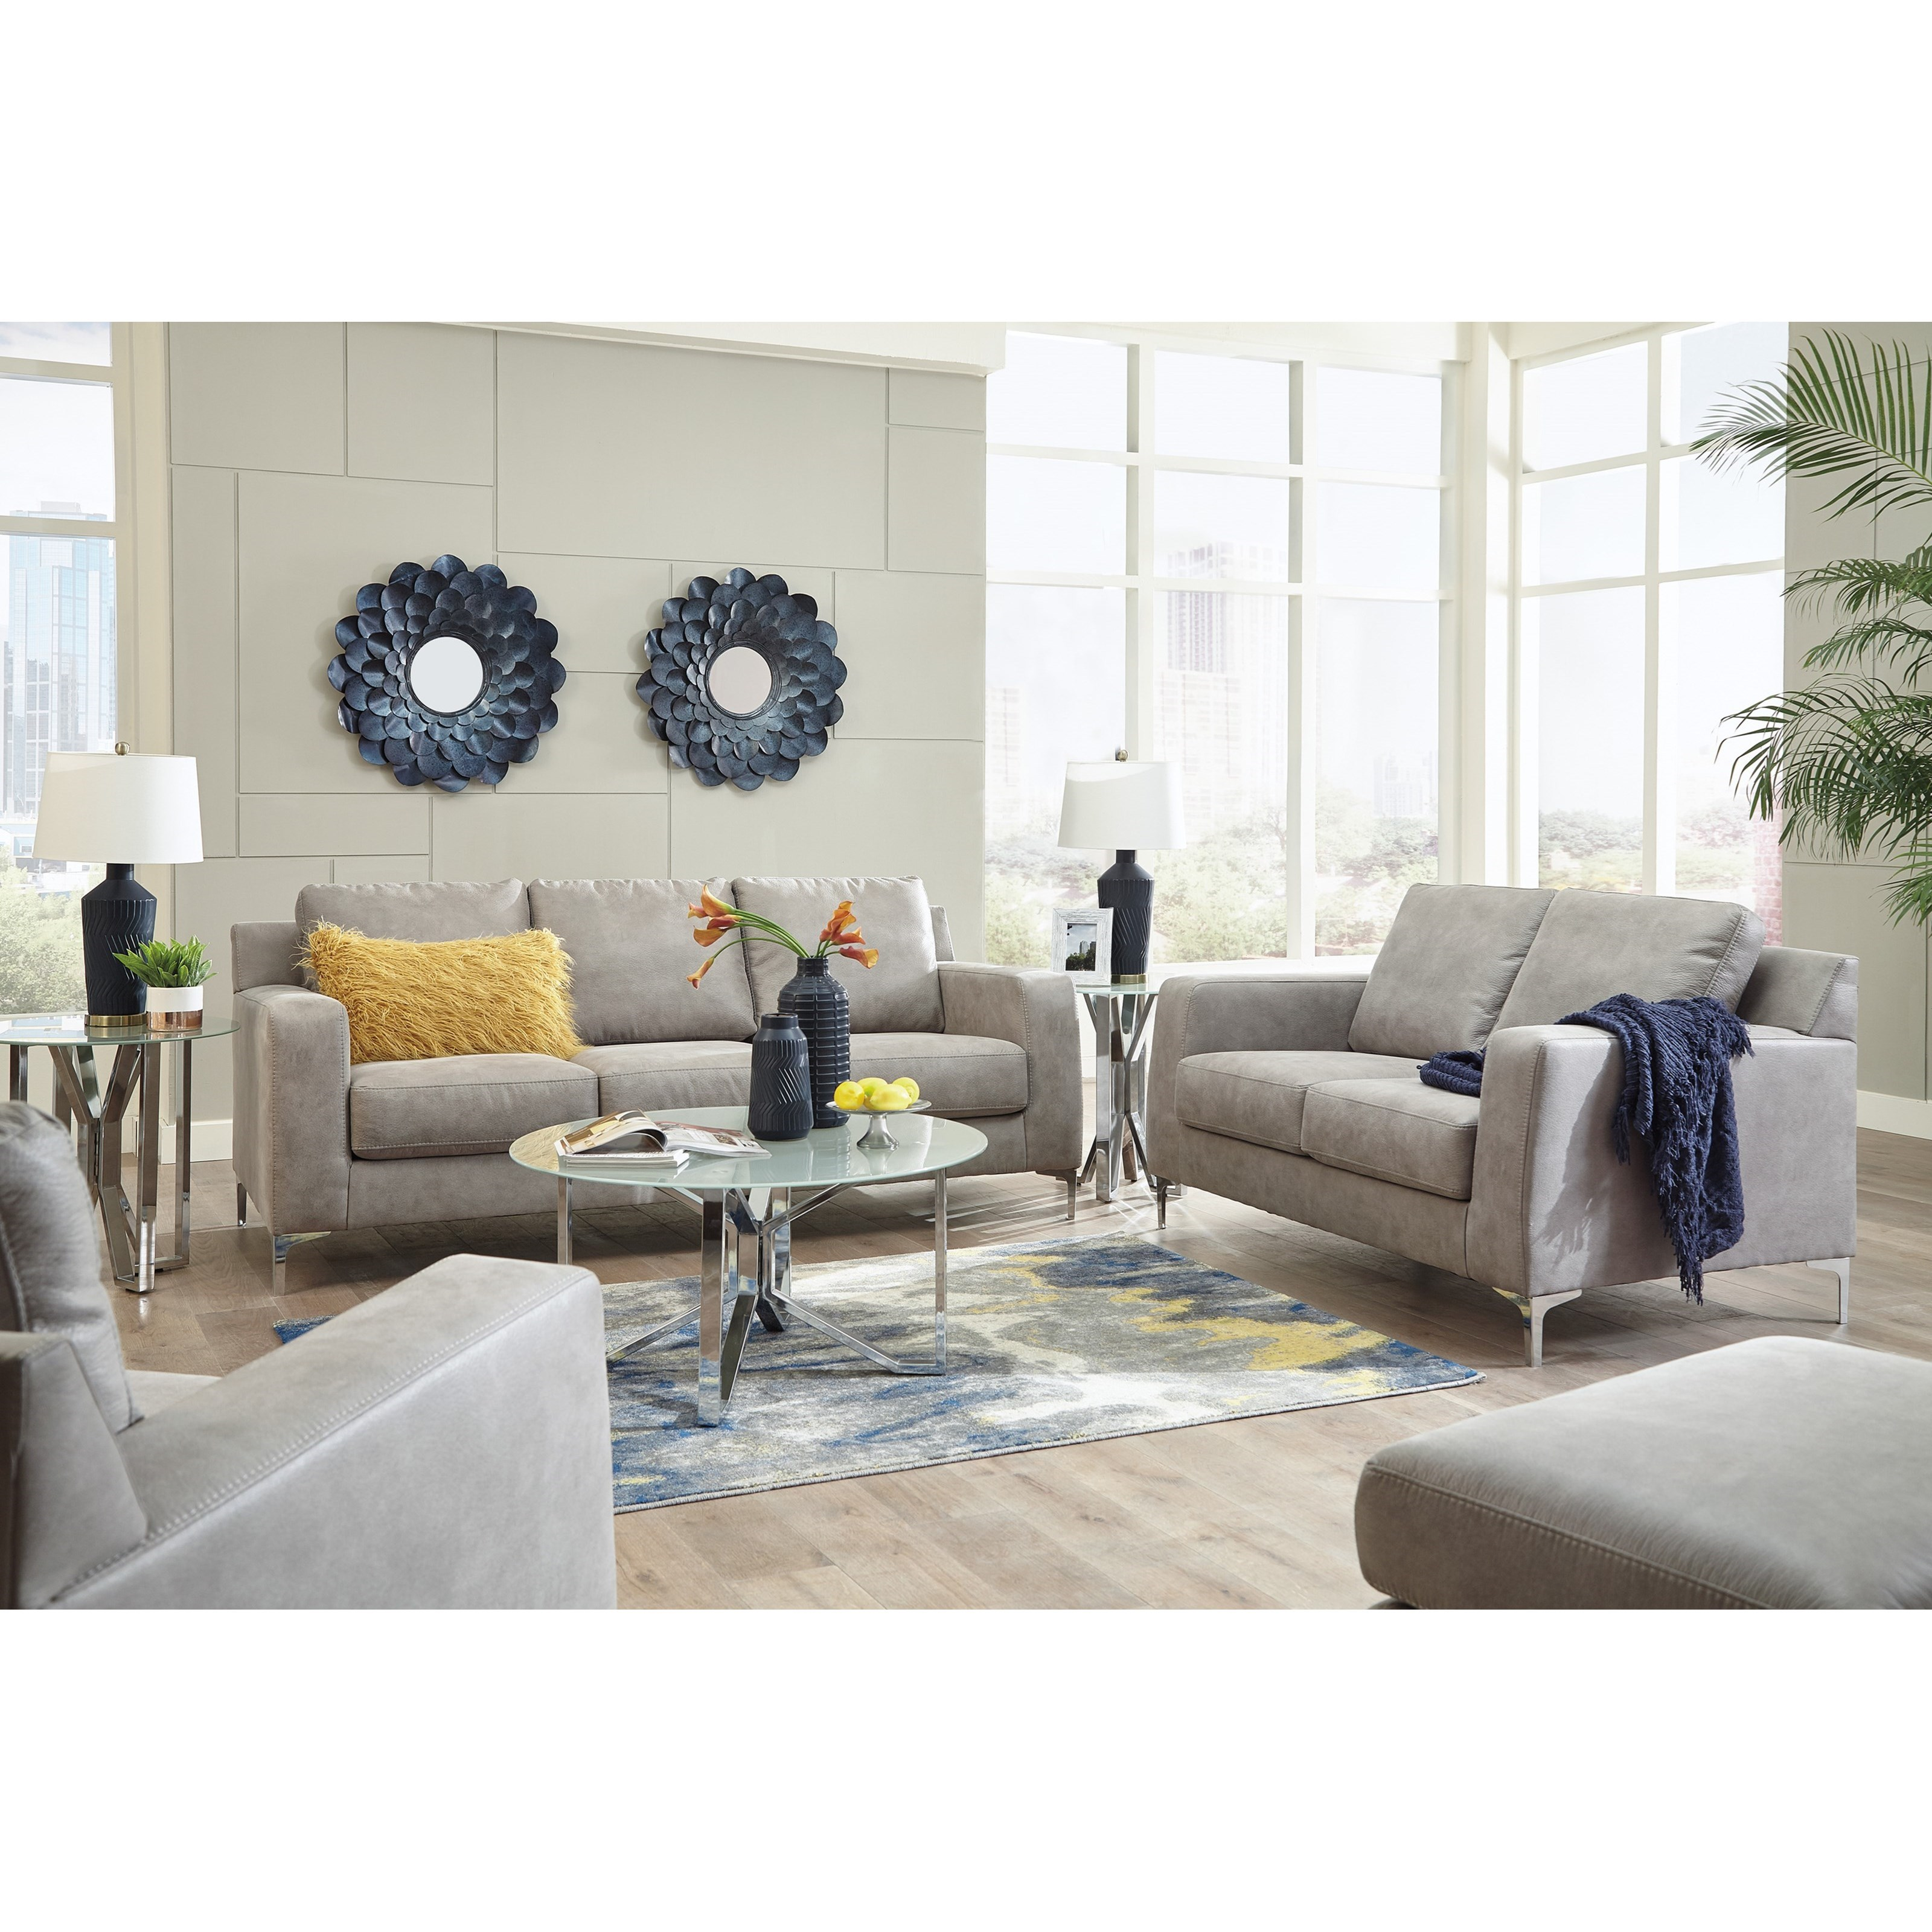 Signature Design by Ashley Ryler Living Room Group | Lindy\'s ...